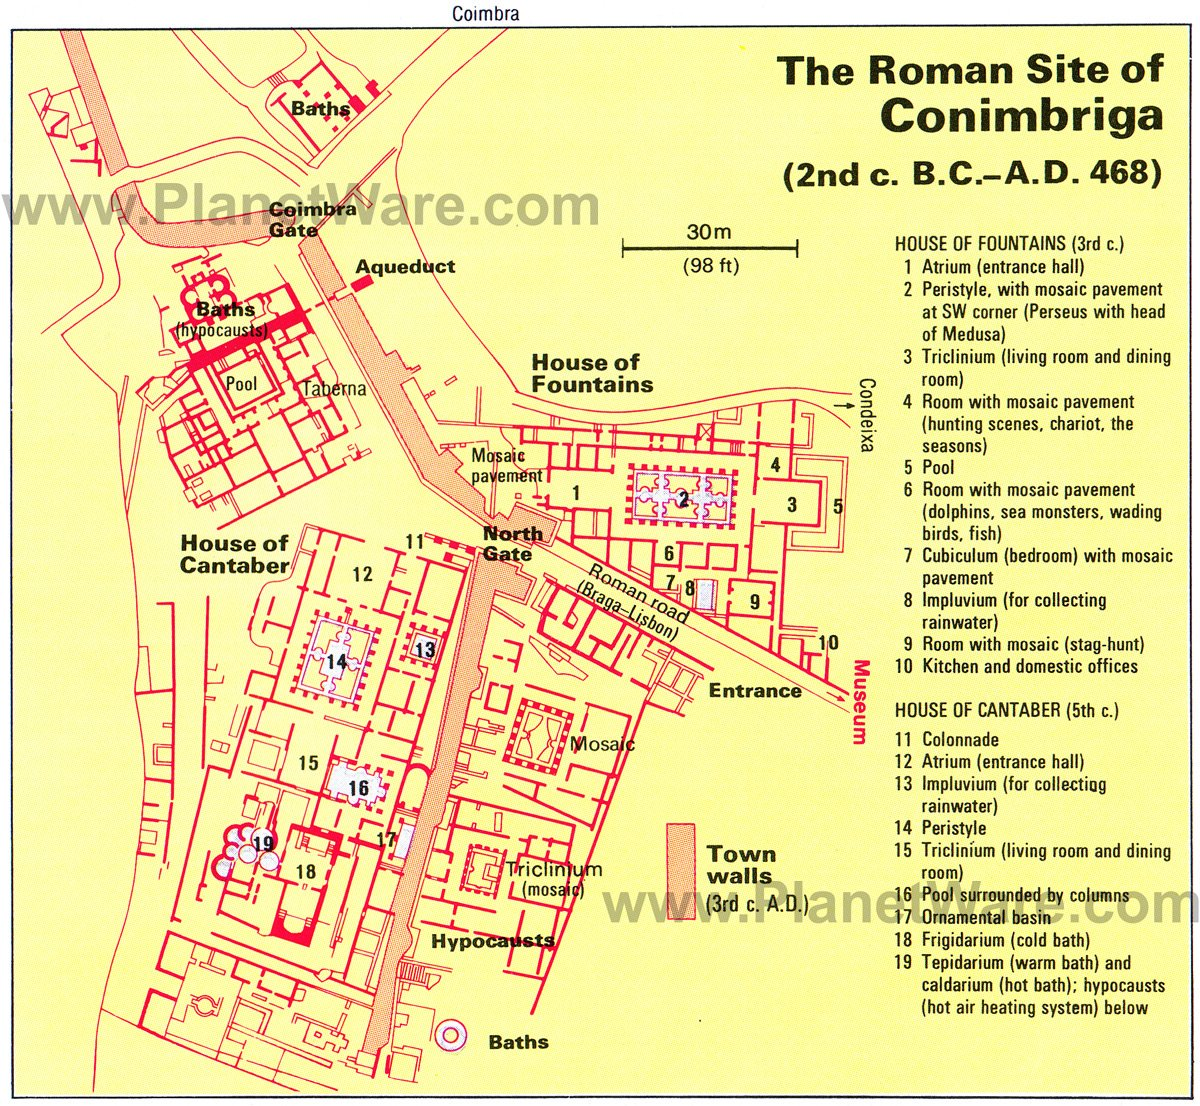 Simple Site Map: 13 Top Tourist Attractions In Coimbra & Easy Day Trips